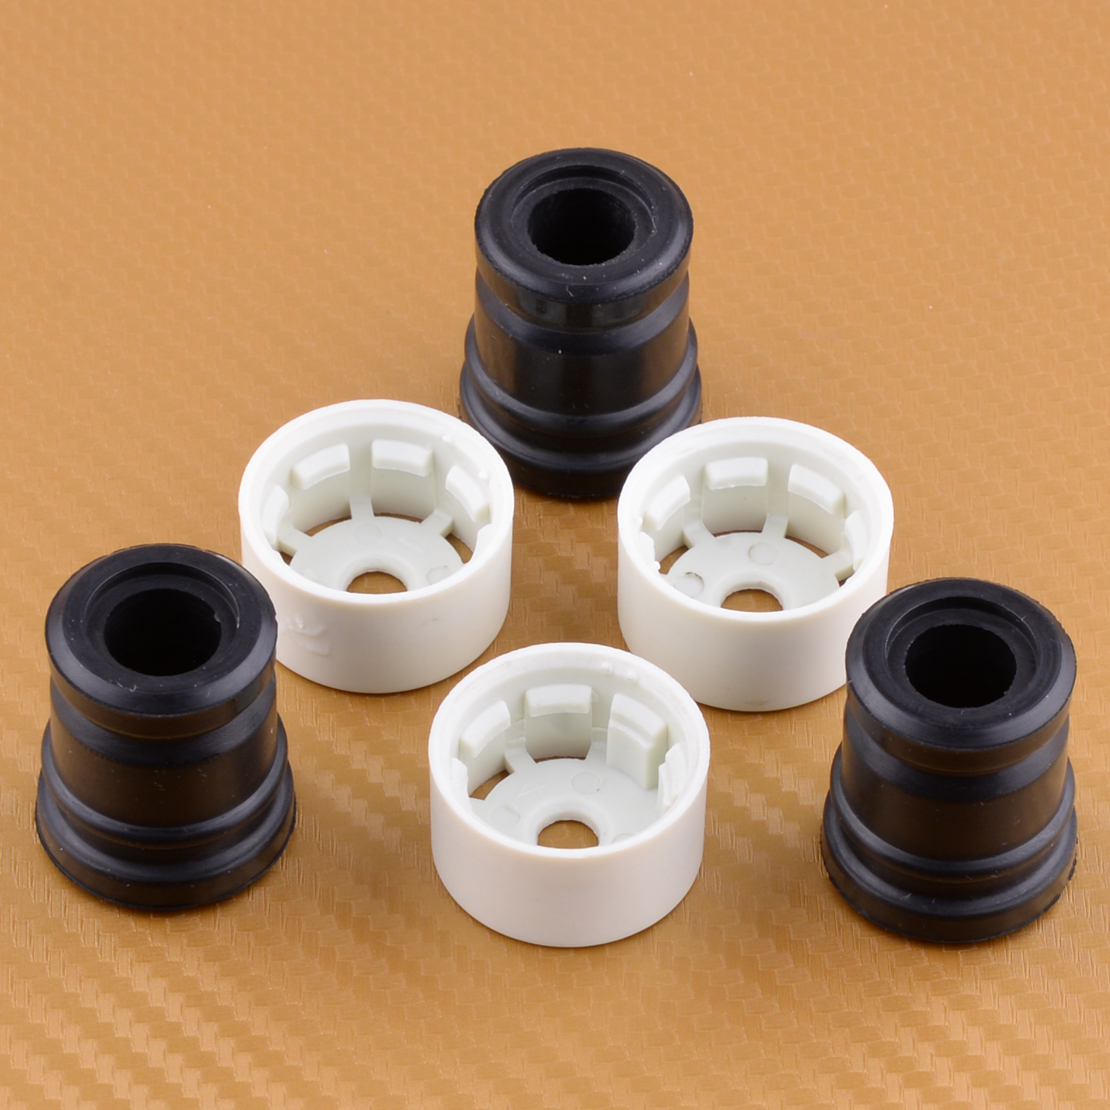 LETAOSK New 3 Pair Annular Buffer Mount Set Fit For STIHL 029 039 MS210 021 MS250 025 MS230 Chainsaw